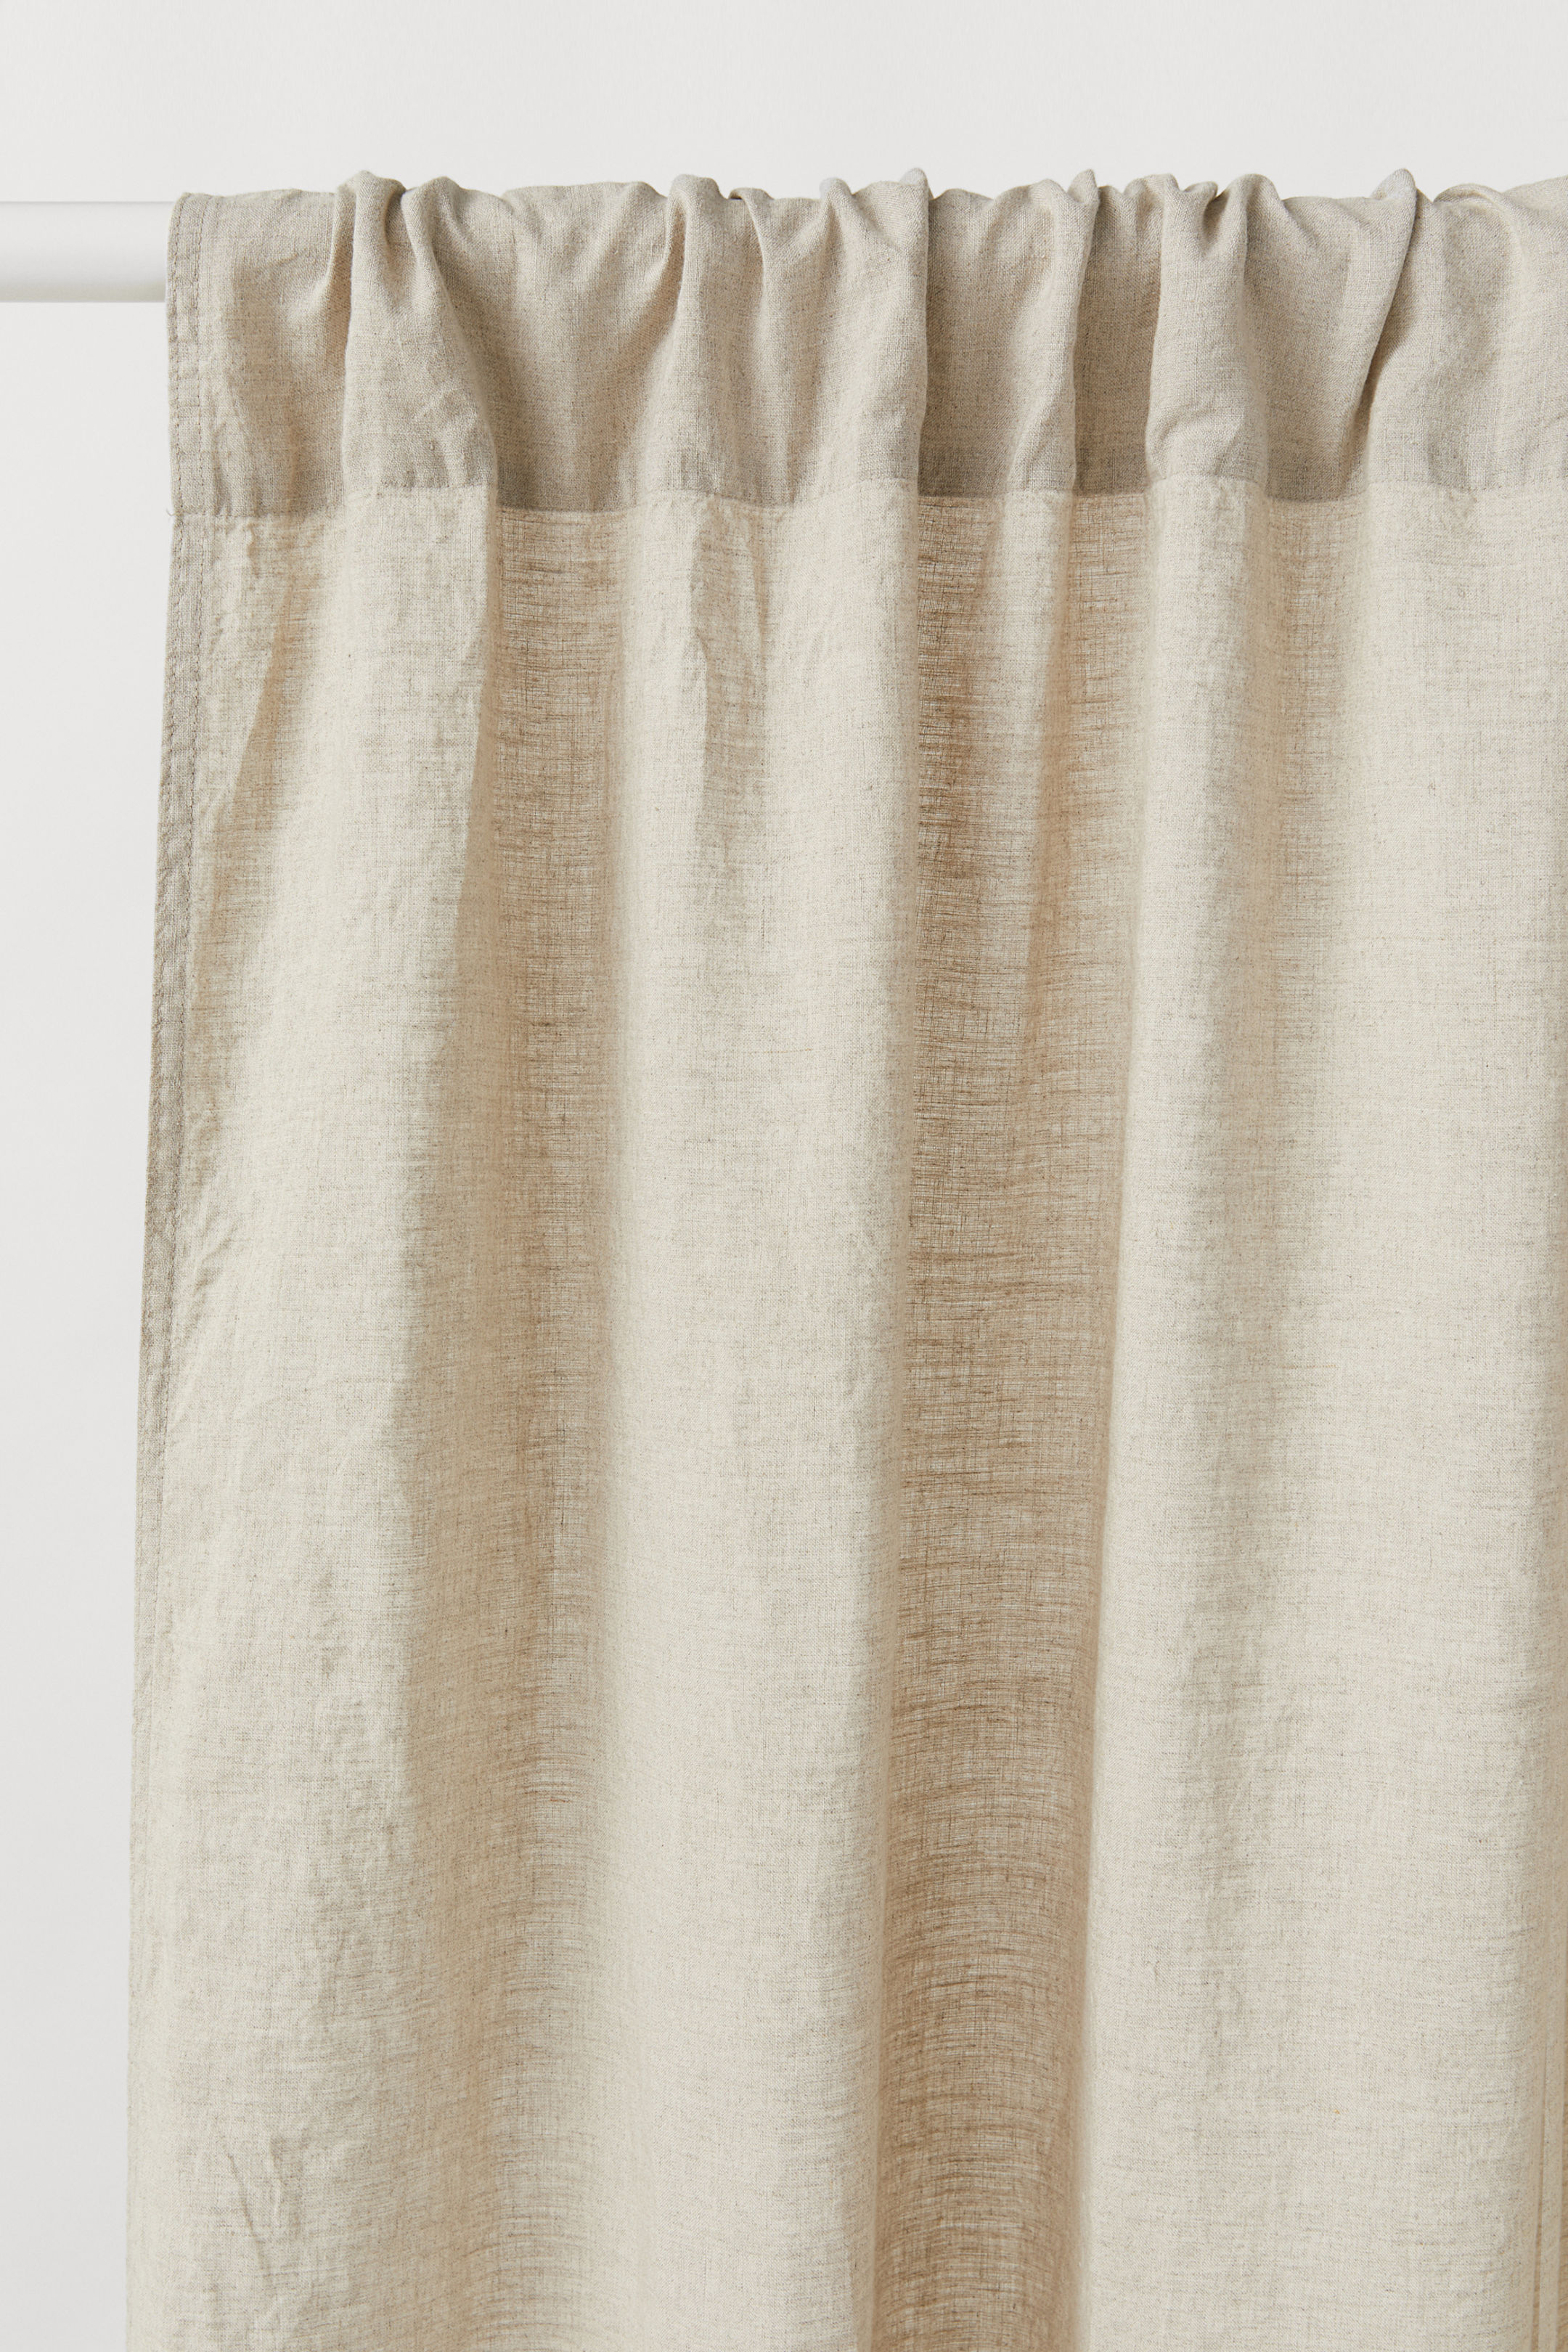 coastal cottage style budget linen curtain panels